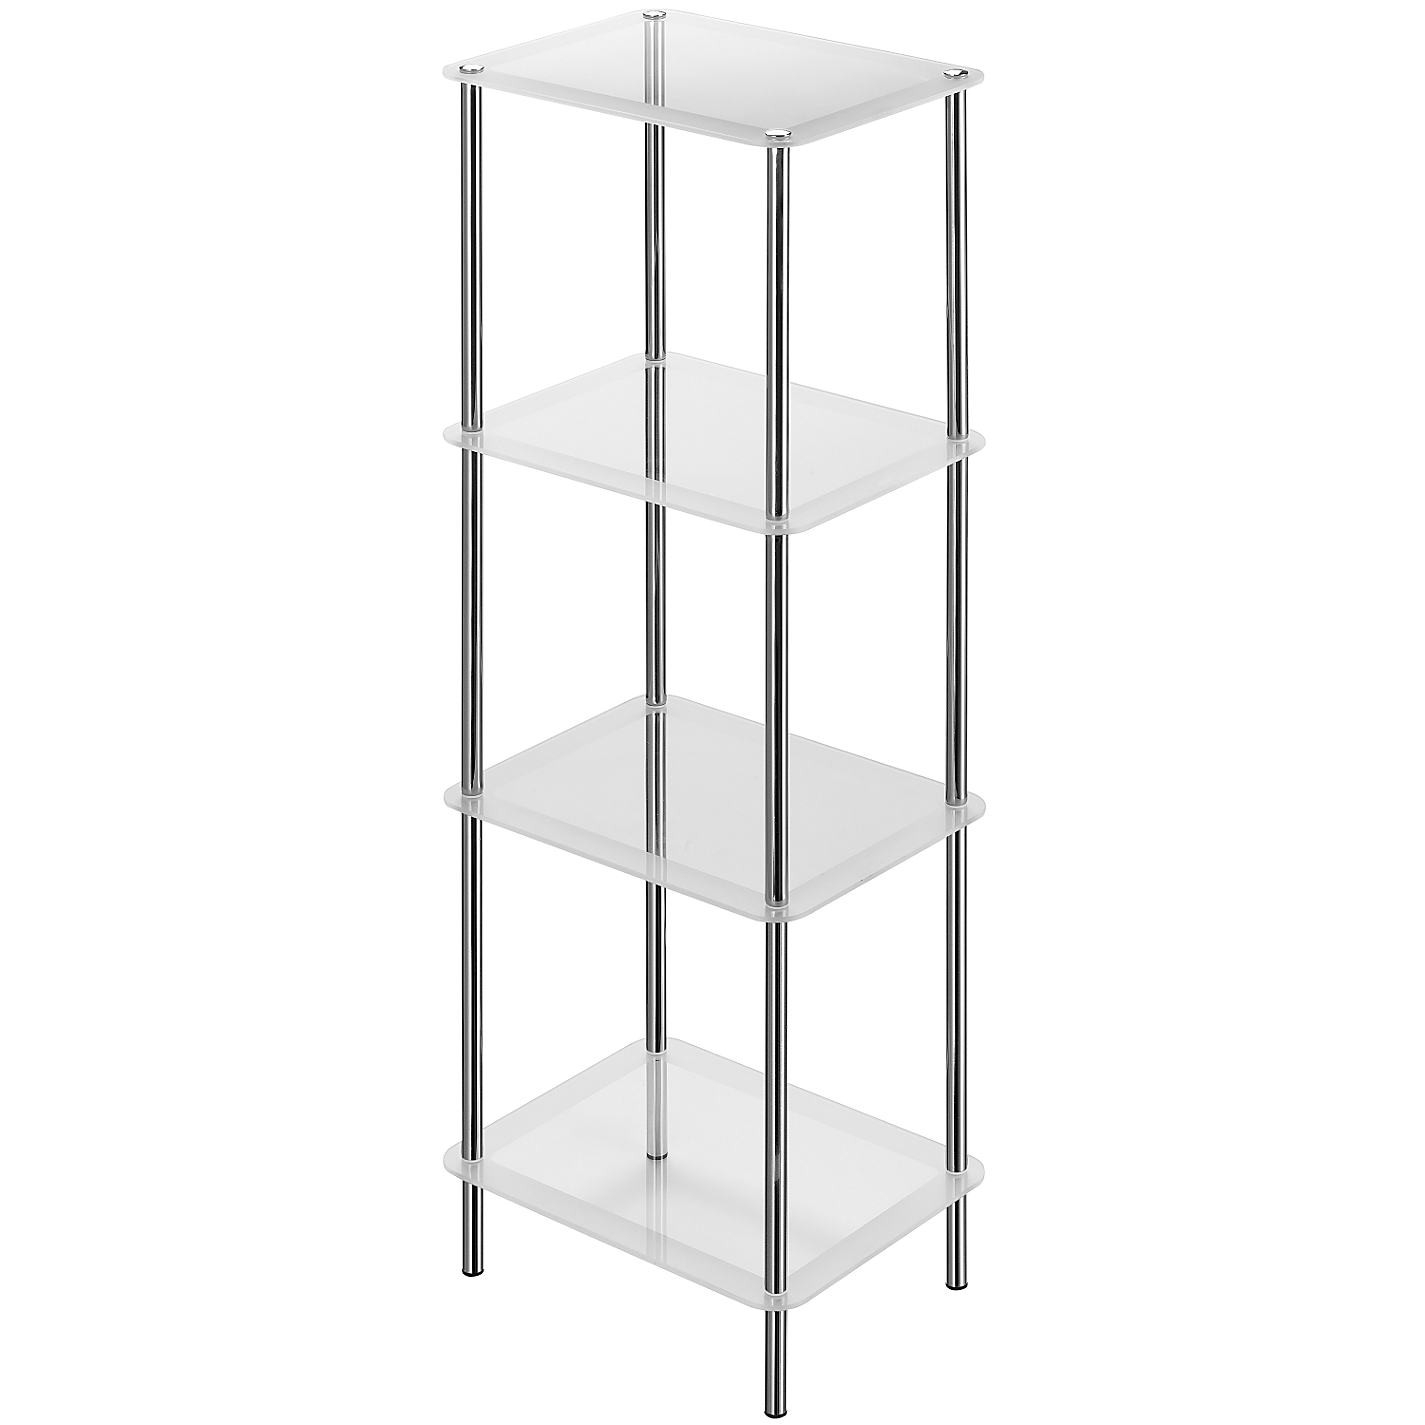 Bathroom Free Standing Shelving Units Bathroom Design In Free Standing Glass Shelves (Image 3 of 15)